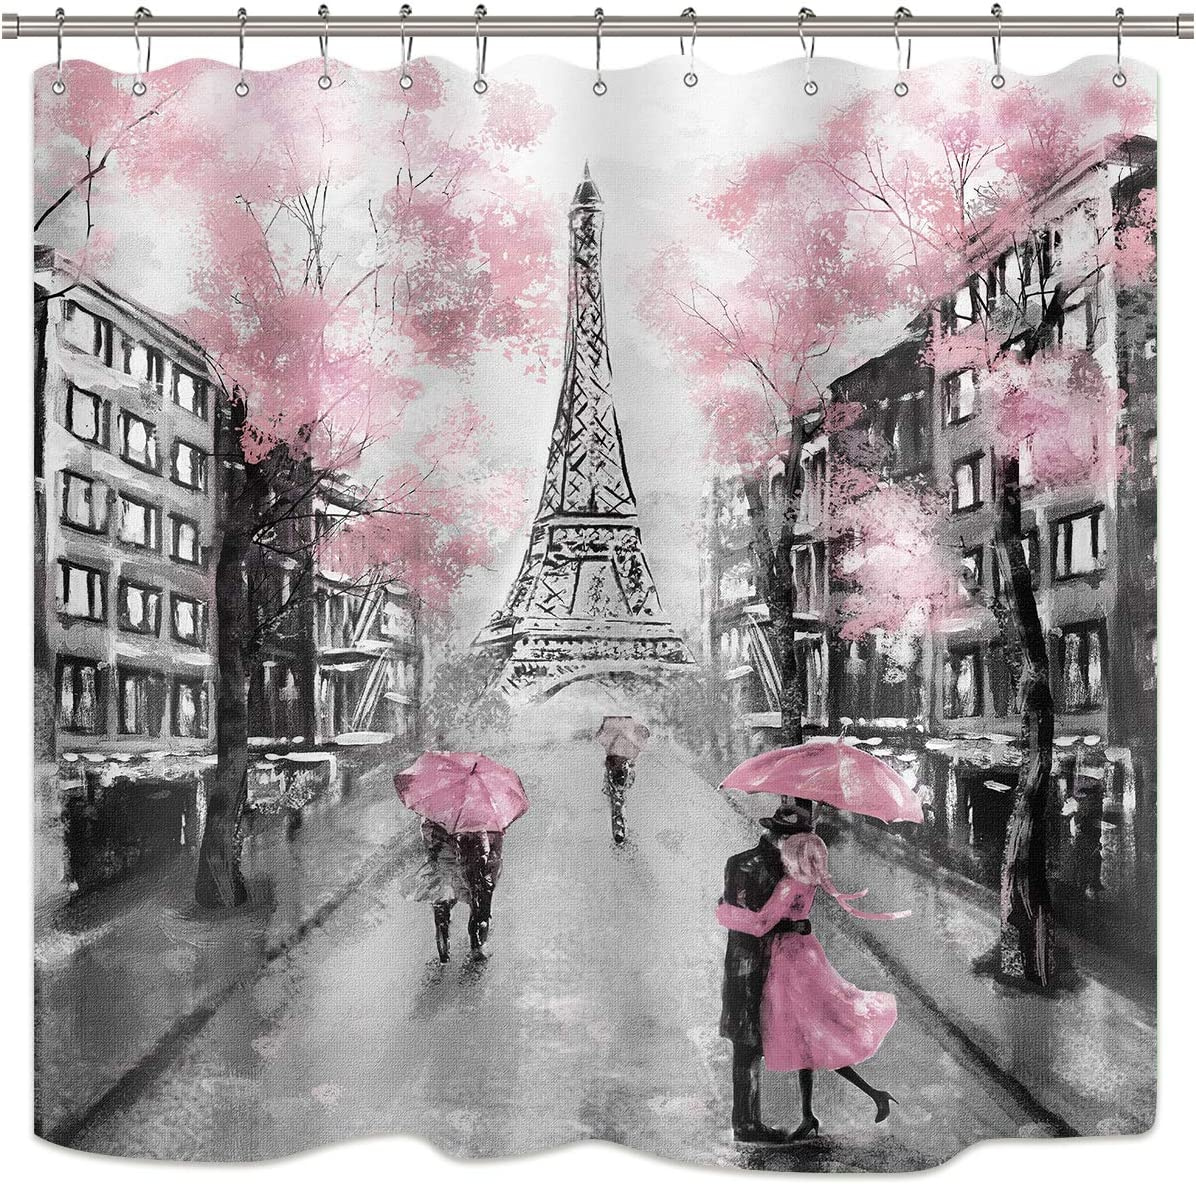 Riyidecor Oil Painting Paris Shower Curtain European City Landscape France Eiffel Tower Modern Couple Black Pink Fabric Waterproof Bathroom Home Decor Set 72Wx72H Inch 12 Plastic Hooks